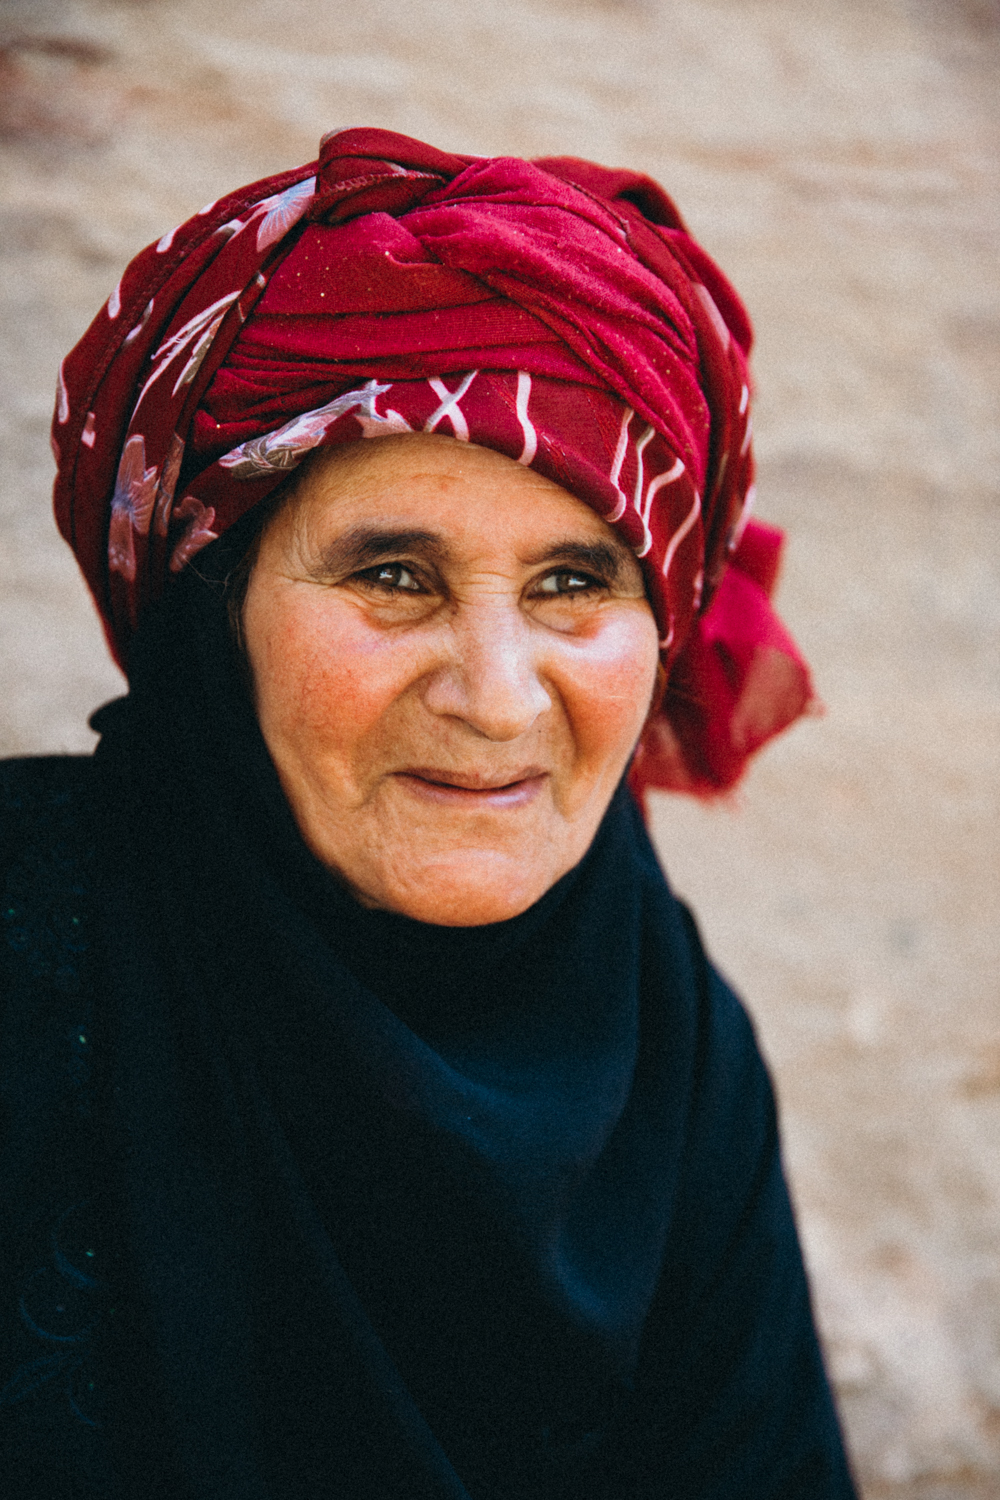 Bedouin woman in Petra.